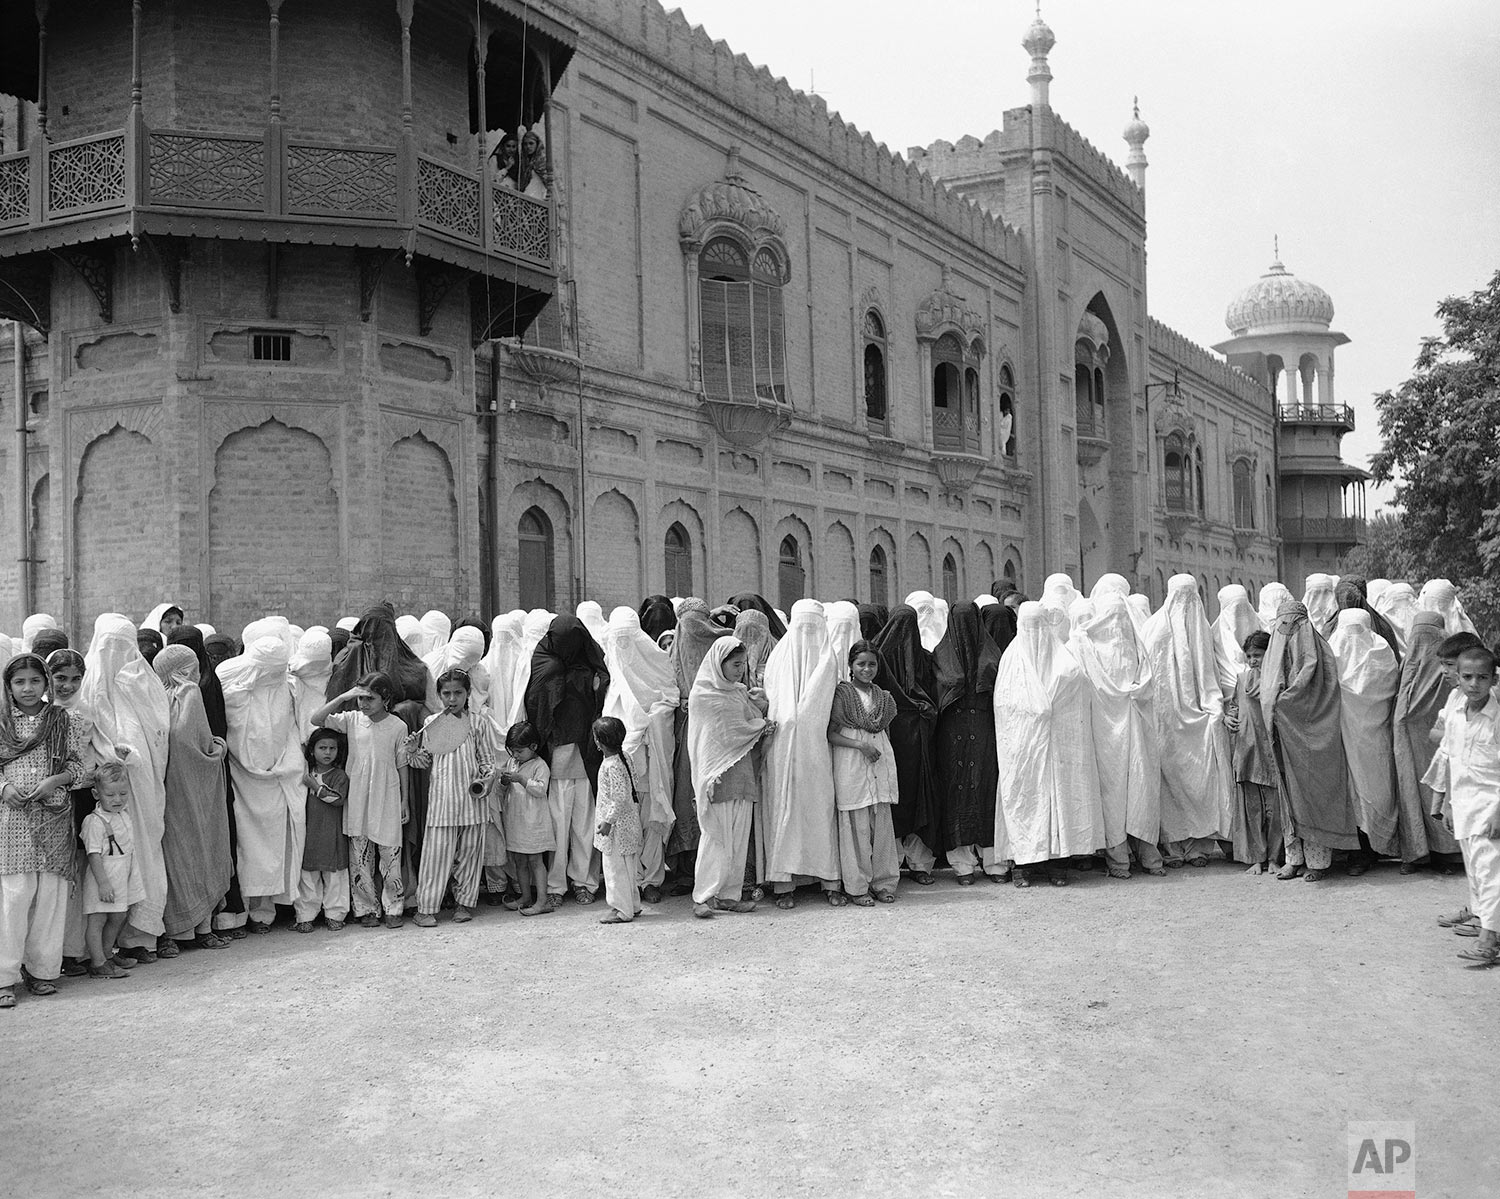 Muslim women, wearing burkahs to keep strict purdah, await their turn to proceed to the polling rooms at the Griffis High School grounds, July 9, 1947 in Peshawar, where they will take part in the referendum voting. (AP Photo/Max Desfor)